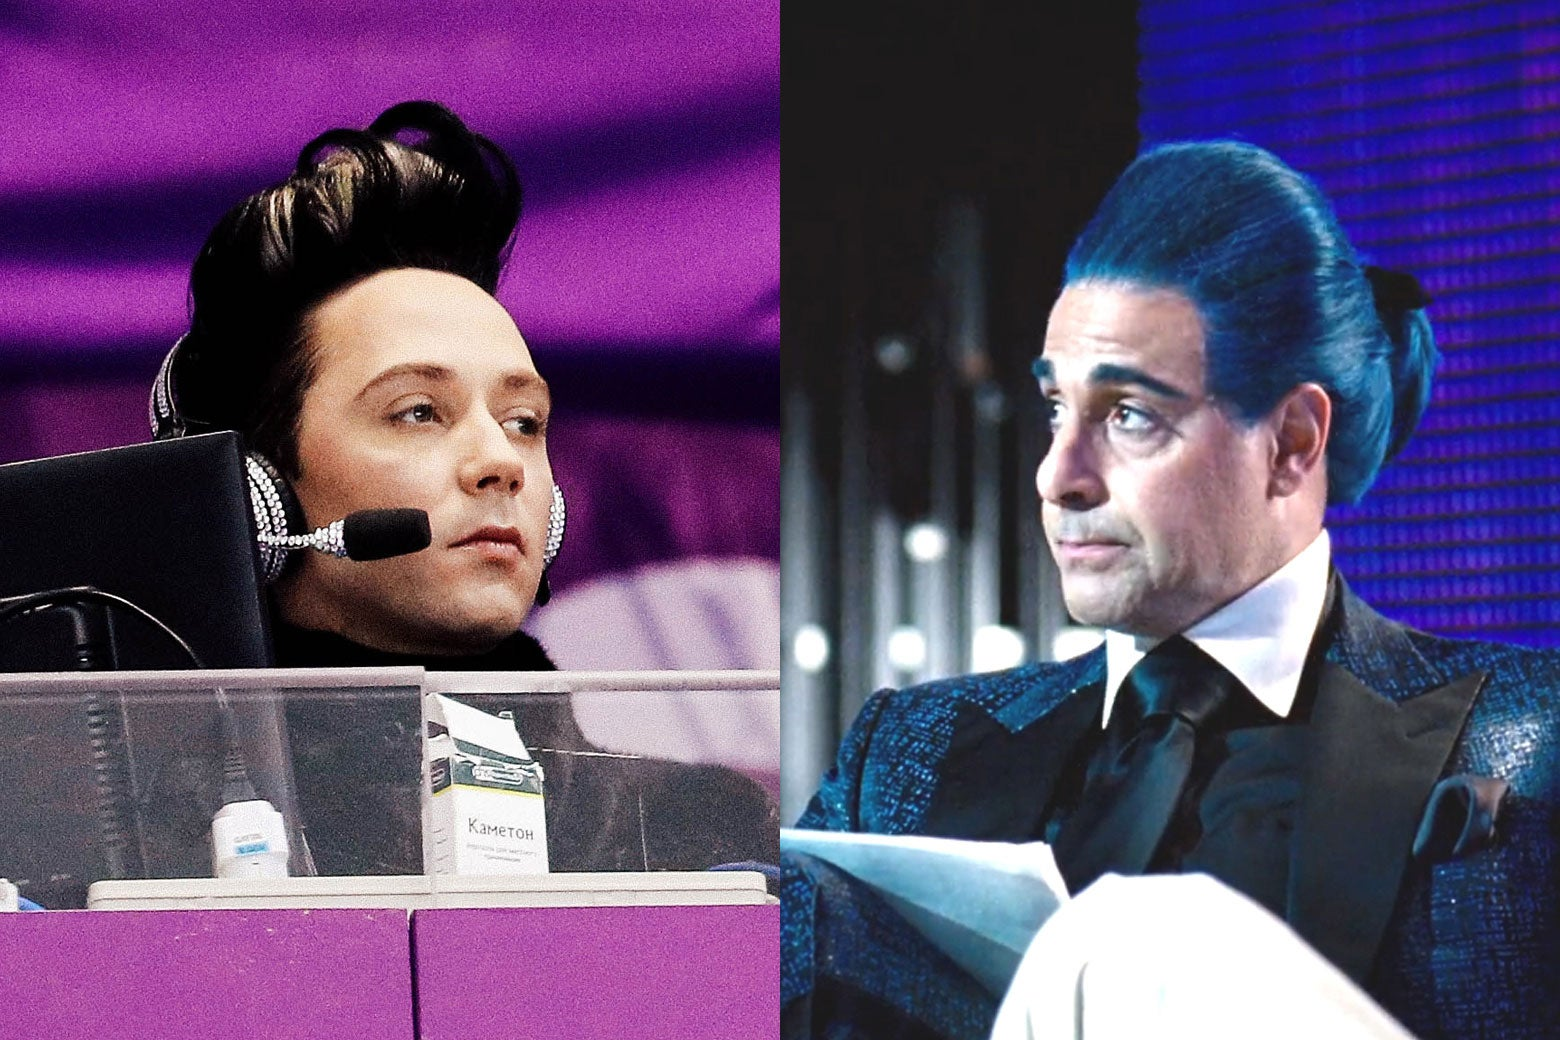 Left: Johnny Weir sports a pompadour. Right: Stanley Tucci as Caesar Flickerman sports a blue pompadour.